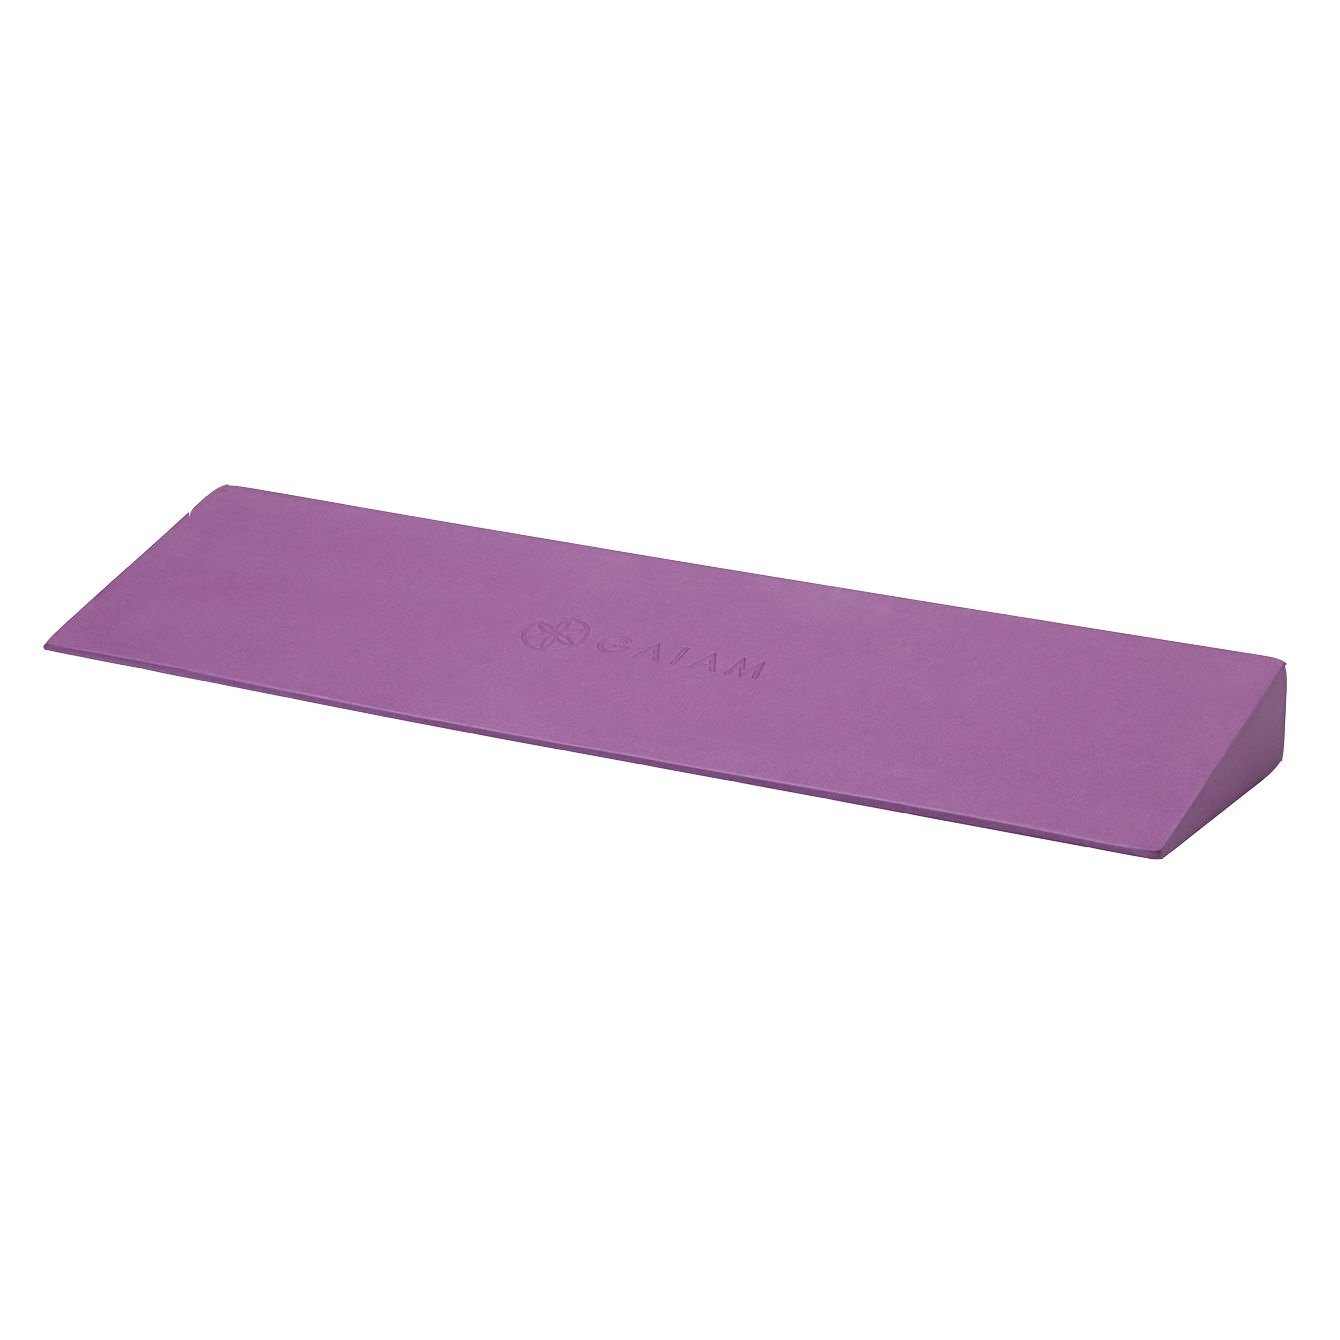 Gaiam Yoga Schaumstoffkeil